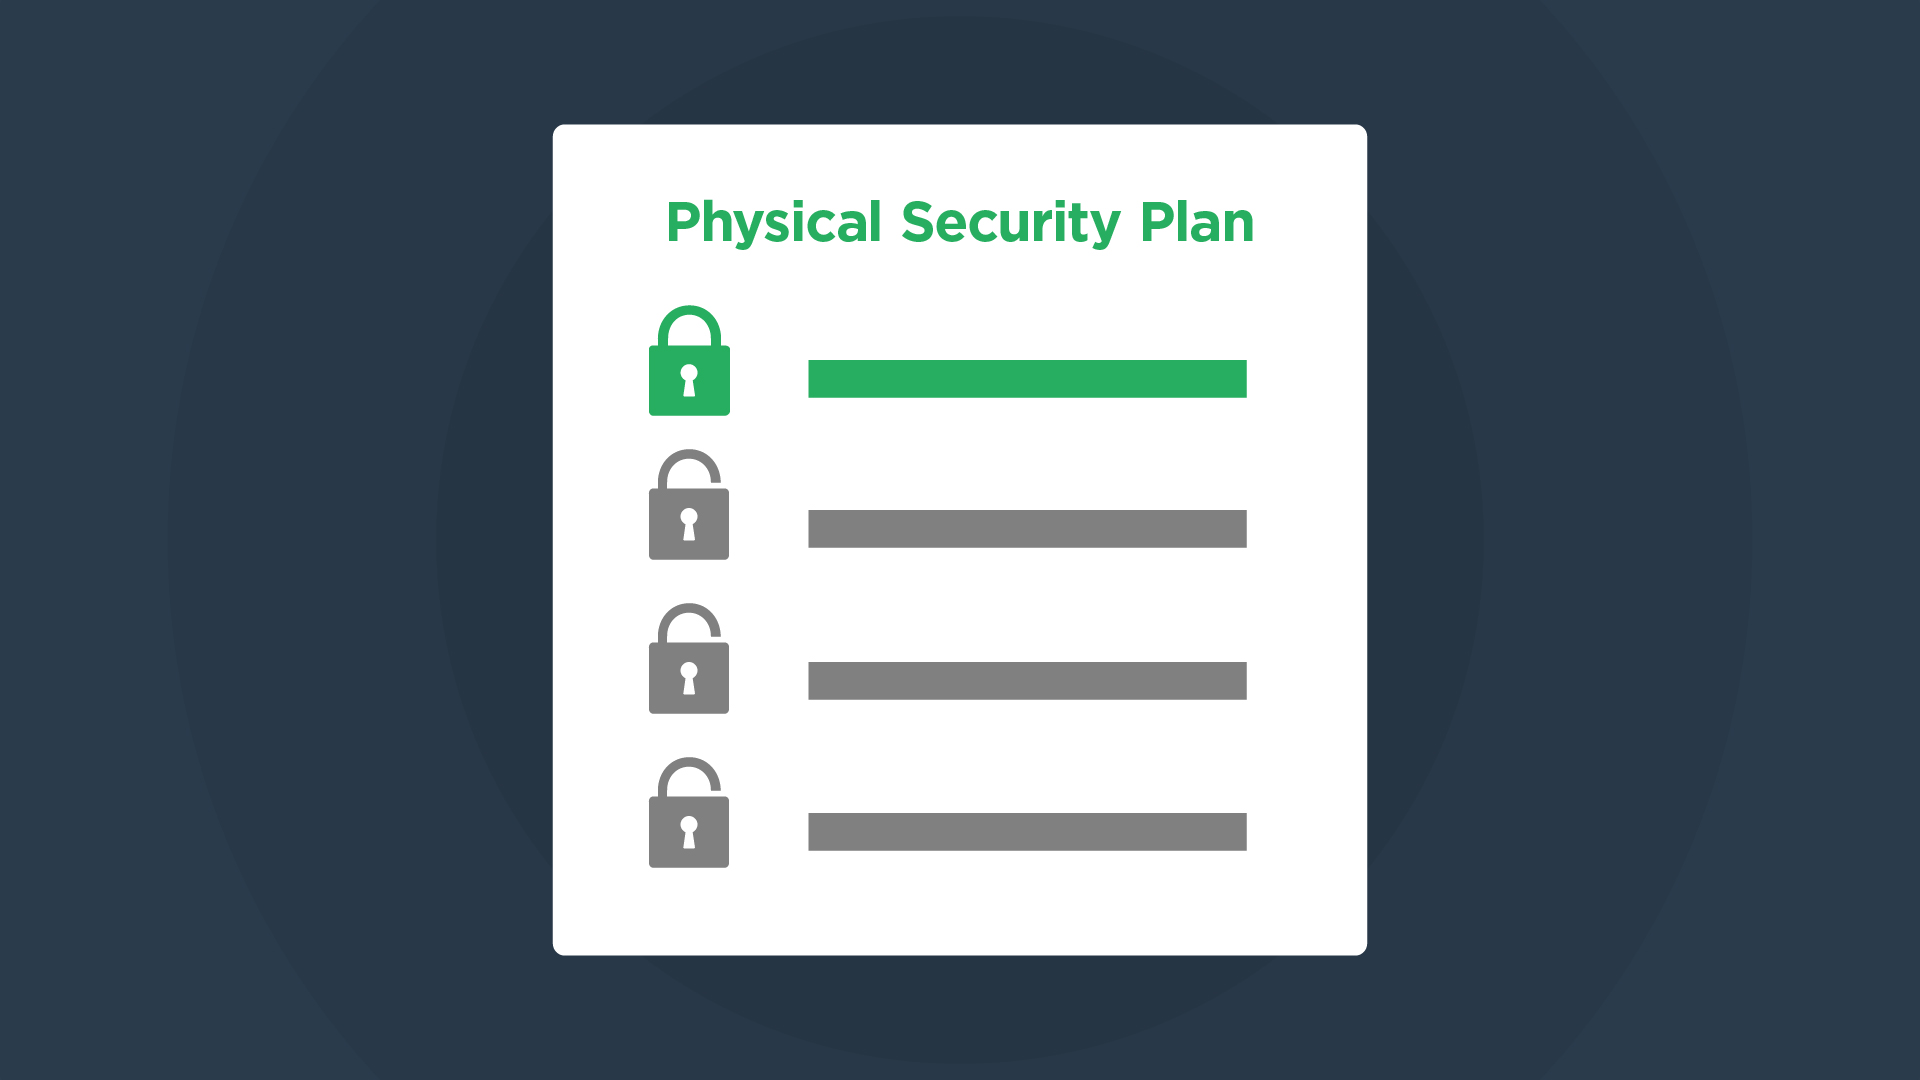 Physical Security Plans